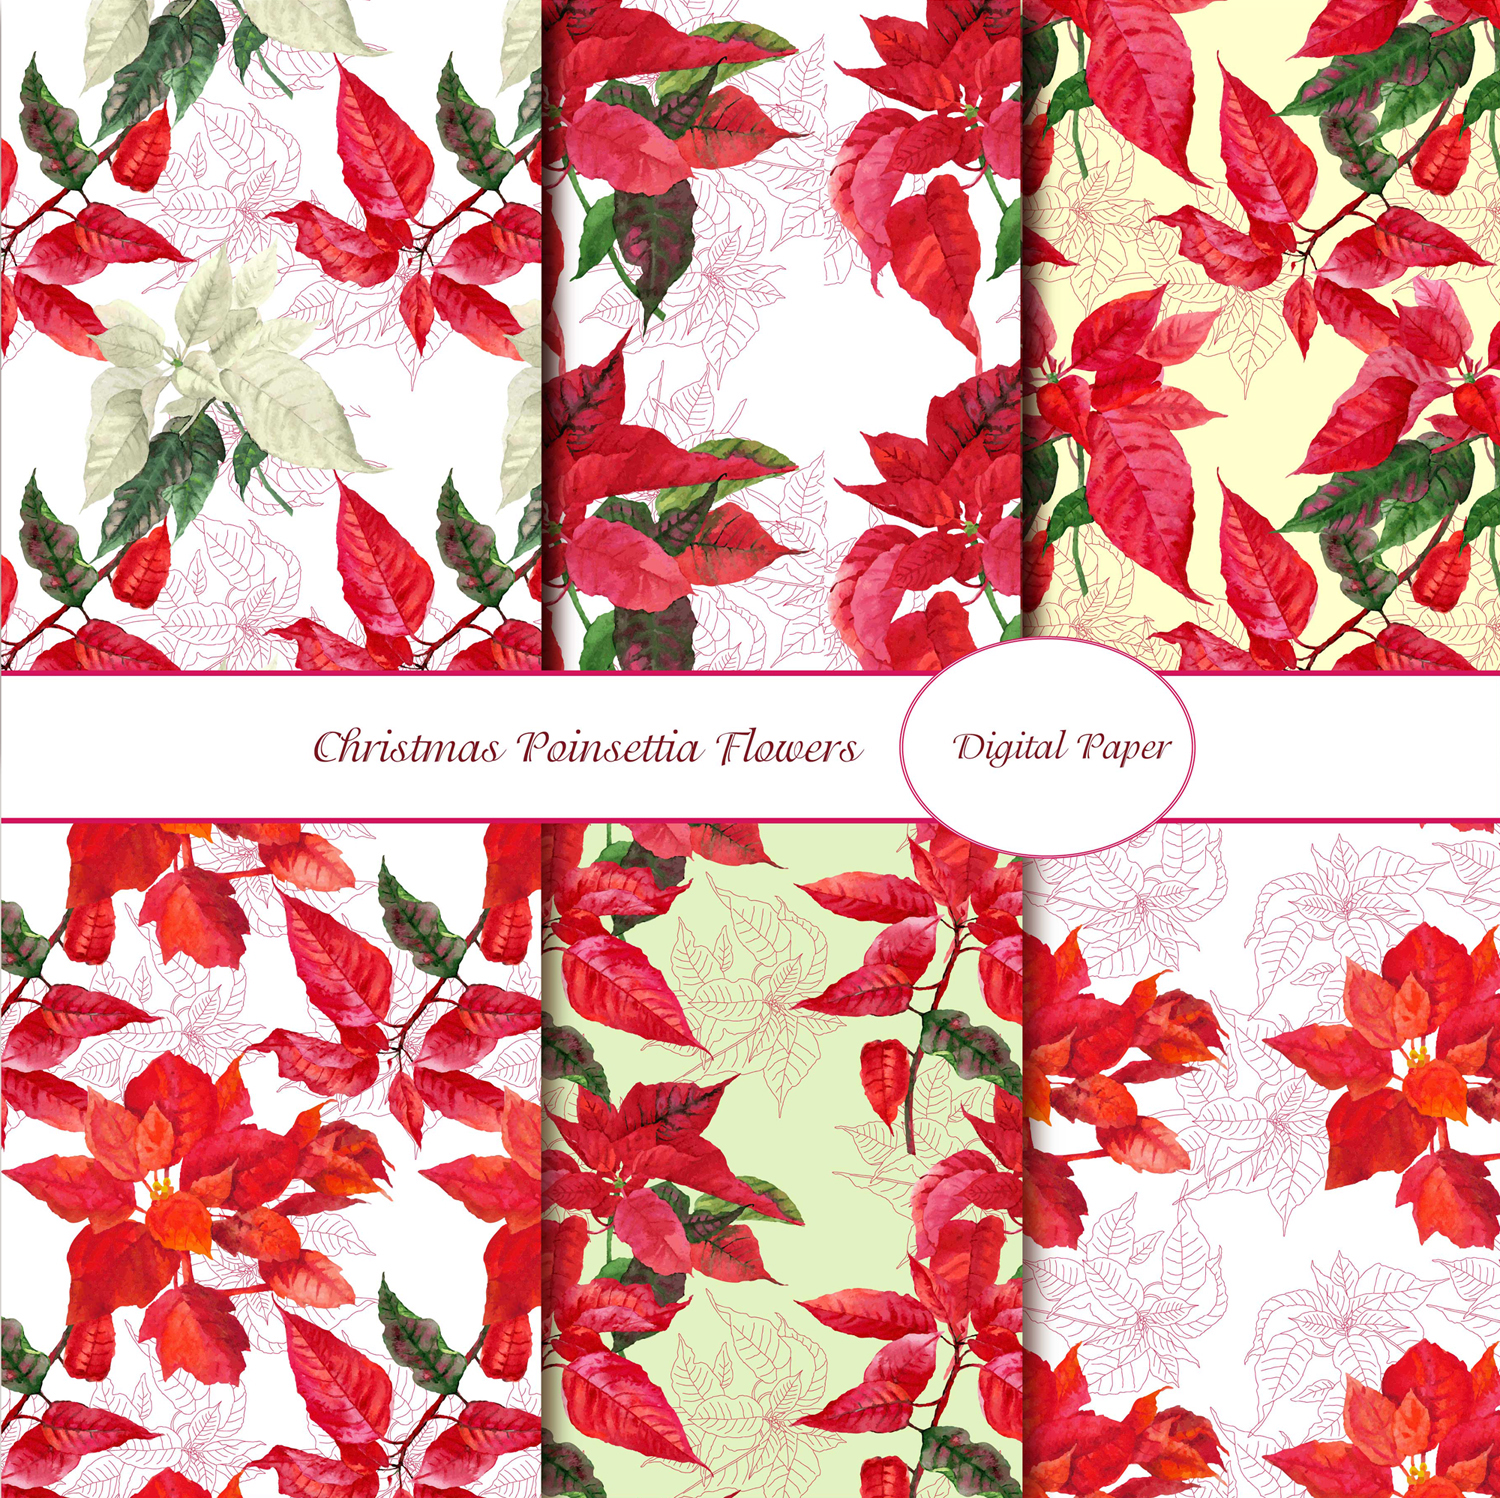 Digital Paper with Poinsettia example image 1